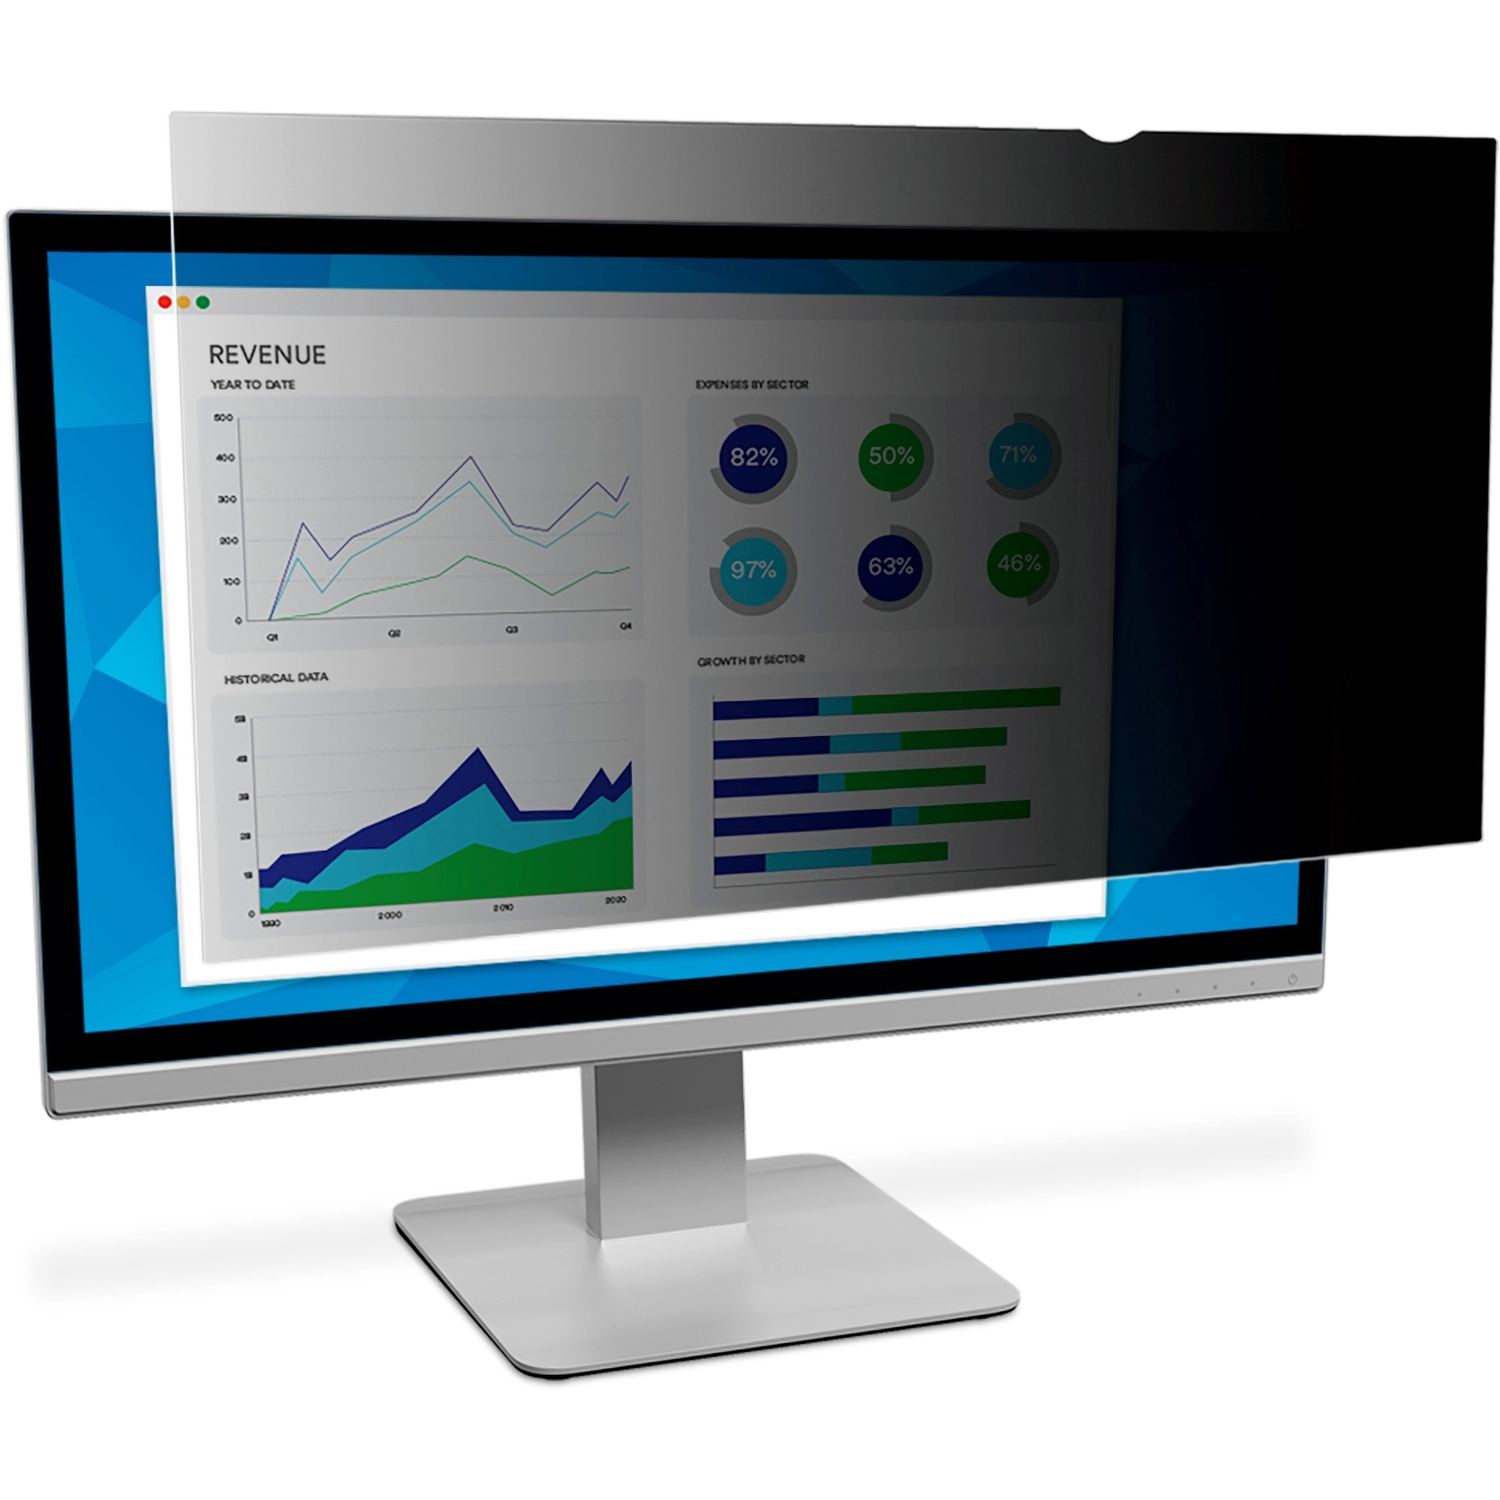 3M PF20.0W9 Privacy Filter for LCD Monitor by 3M